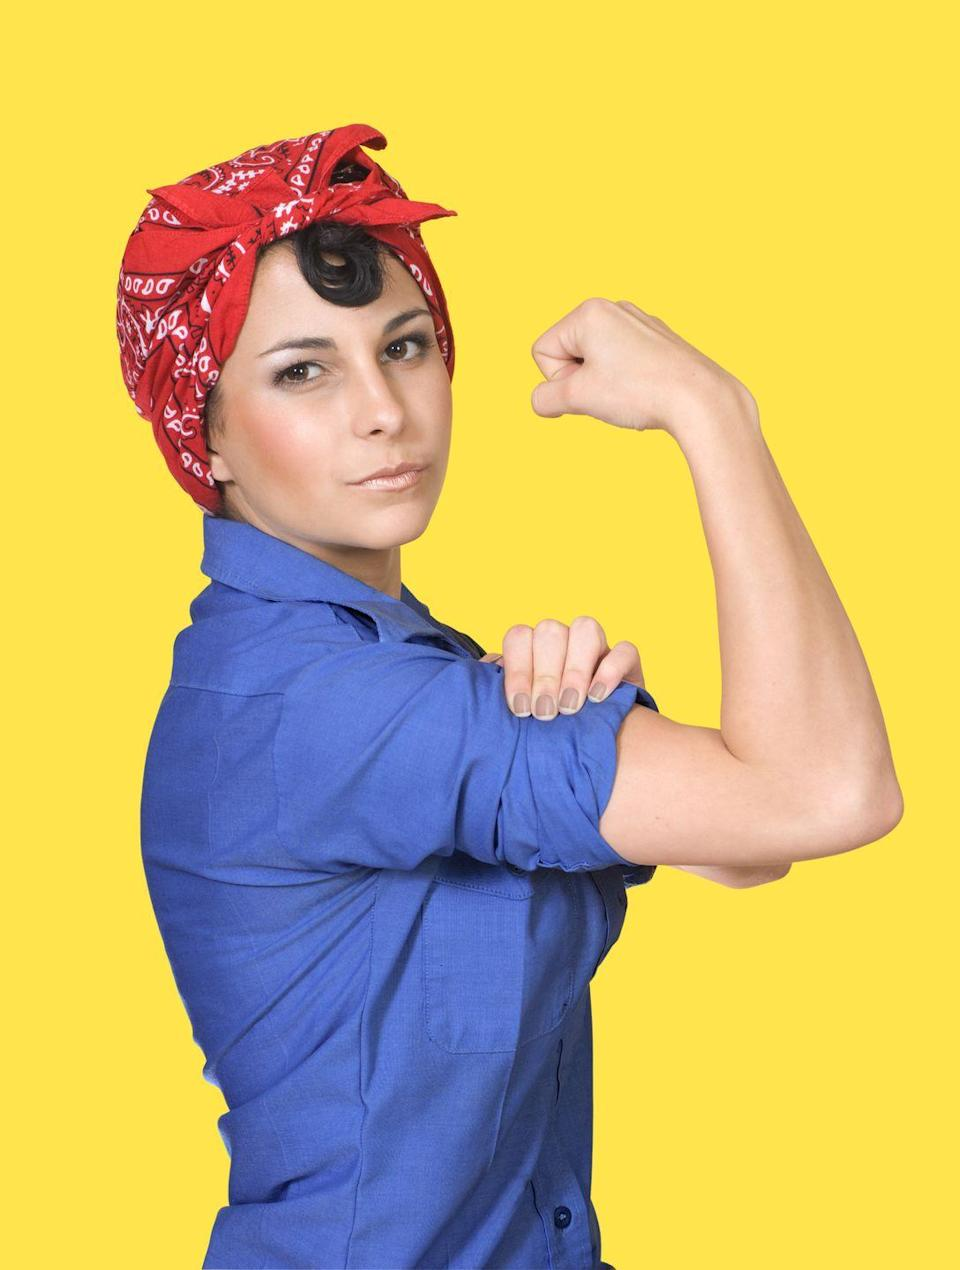 """<p>Your kids already look up to you as a strong female figure, but take it one step further for Halloween. Roll up your sleeves and perfect your best """"We can do it"""" pose. </p><p><a class=""""link rapid-noclick-resp"""" href=""""https://www.amazon.com/Amscan-Multi-Purpose-Bandana-Western-Headwear/dp/B009USLJBM/?tag=syn-yahoo-20&ascsubtag=%5Bartid%7C10050.g.28181767%5Bsrc%7Cyahoo-us"""" rel=""""nofollow noopener"""" target=""""_blank"""" data-ylk=""""slk:SHOP RED BANDANAS"""">SHOP RED BANDANAS</a></p>"""